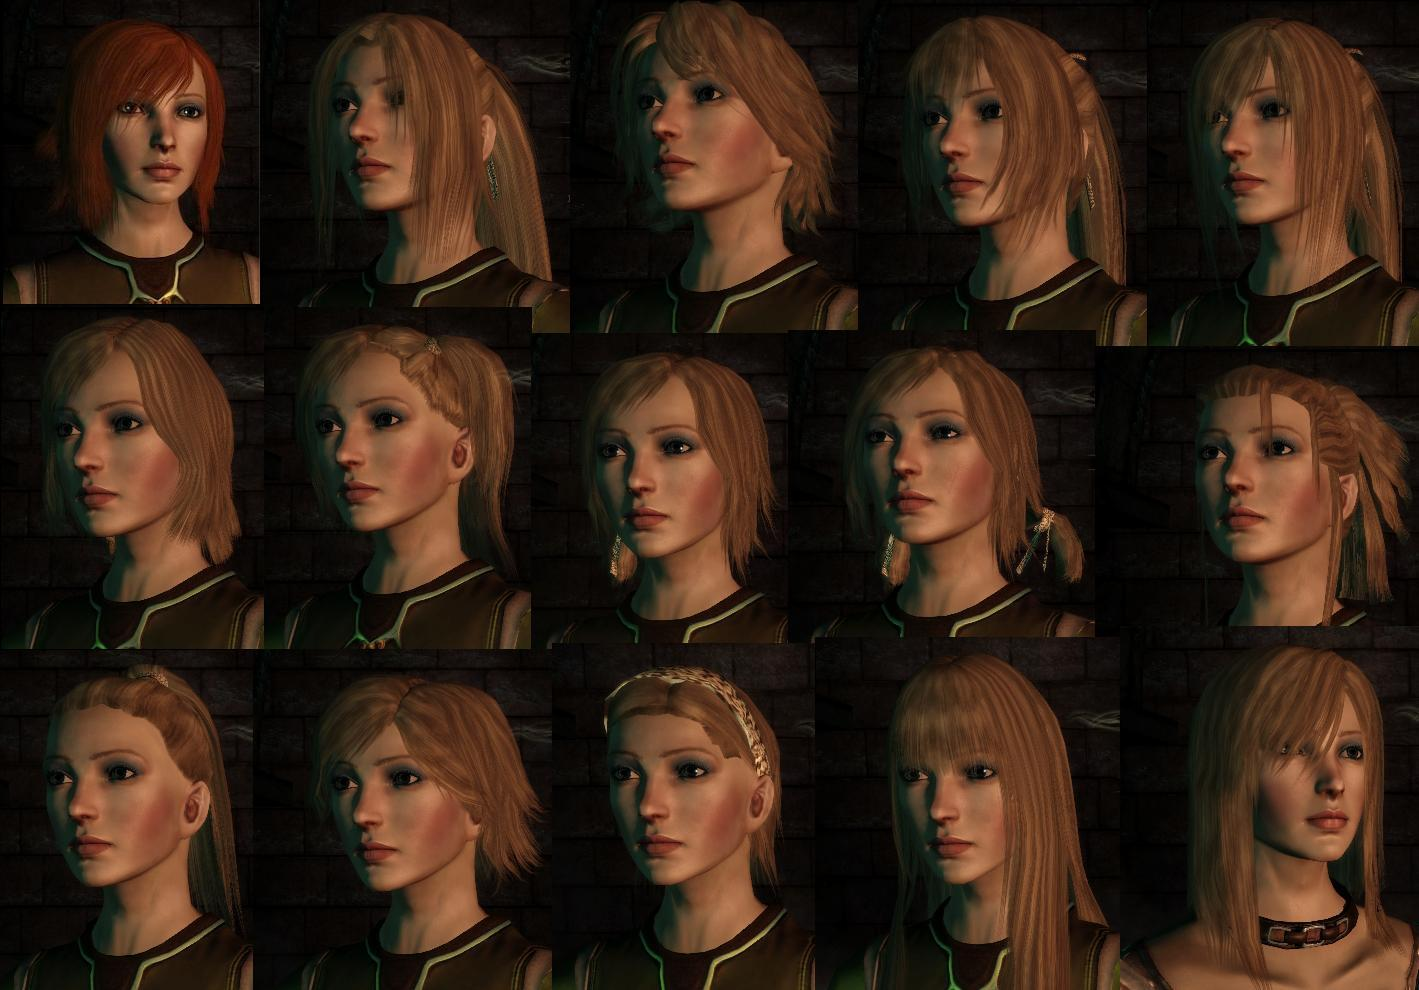 More HairStyles - Dragon Age Origins Images